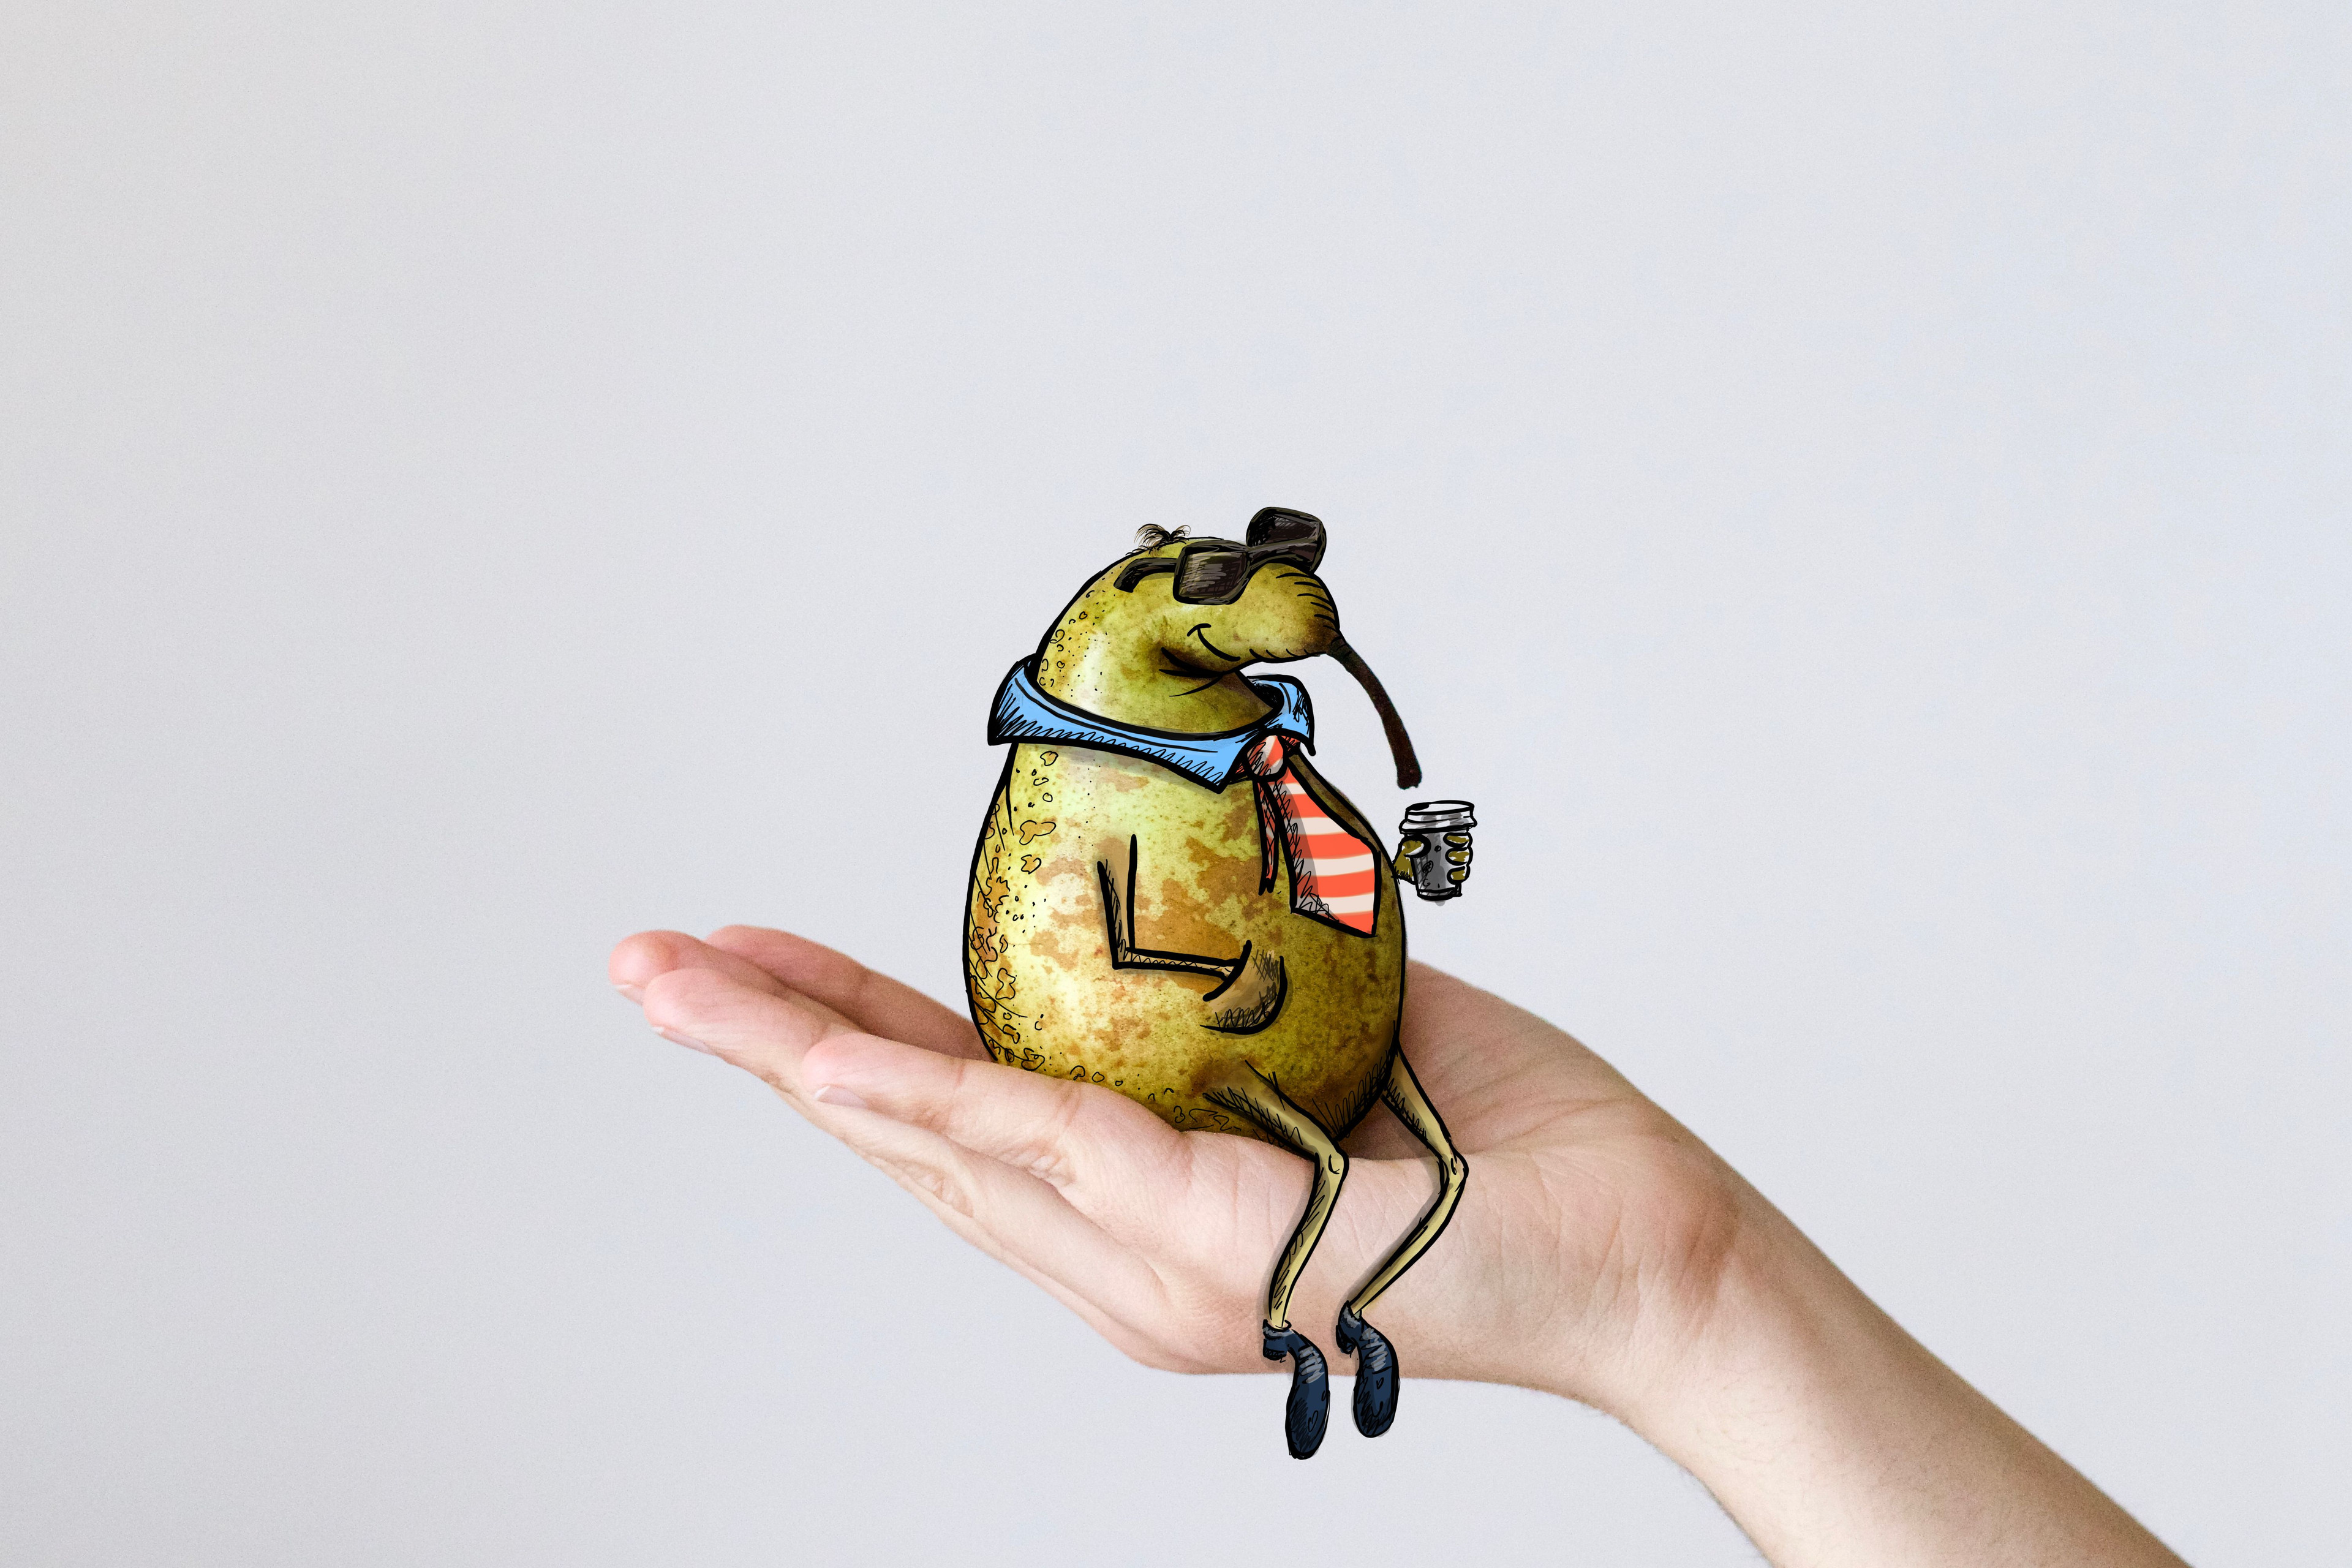 Mr Pear - character visualization